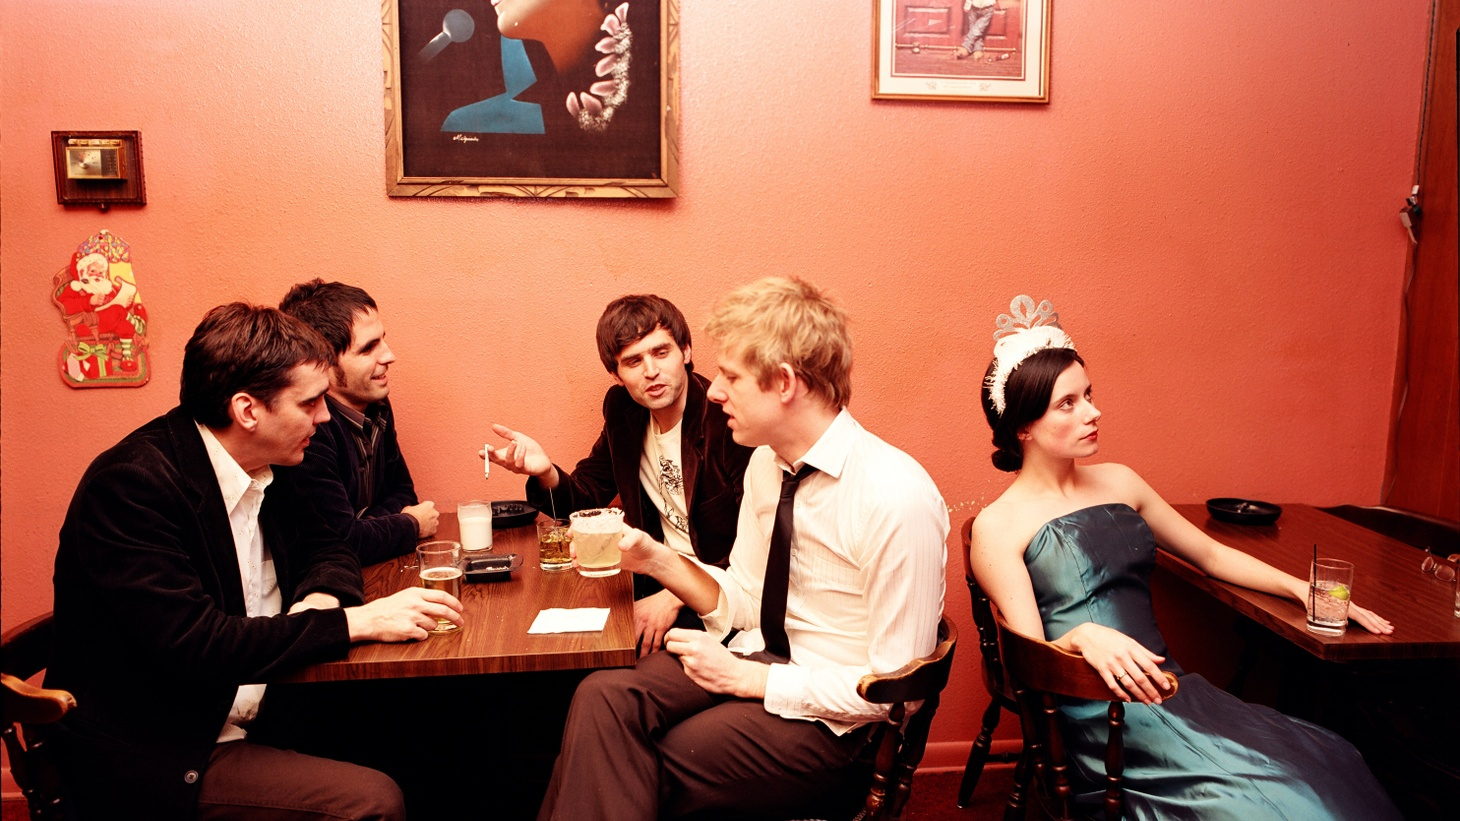 For its 10th anniversary, Spoon's classic album Gimme Fictionhas been re-released and remastered as a limited-edition double CD/LP, with 12 previously-unreleased tracks.